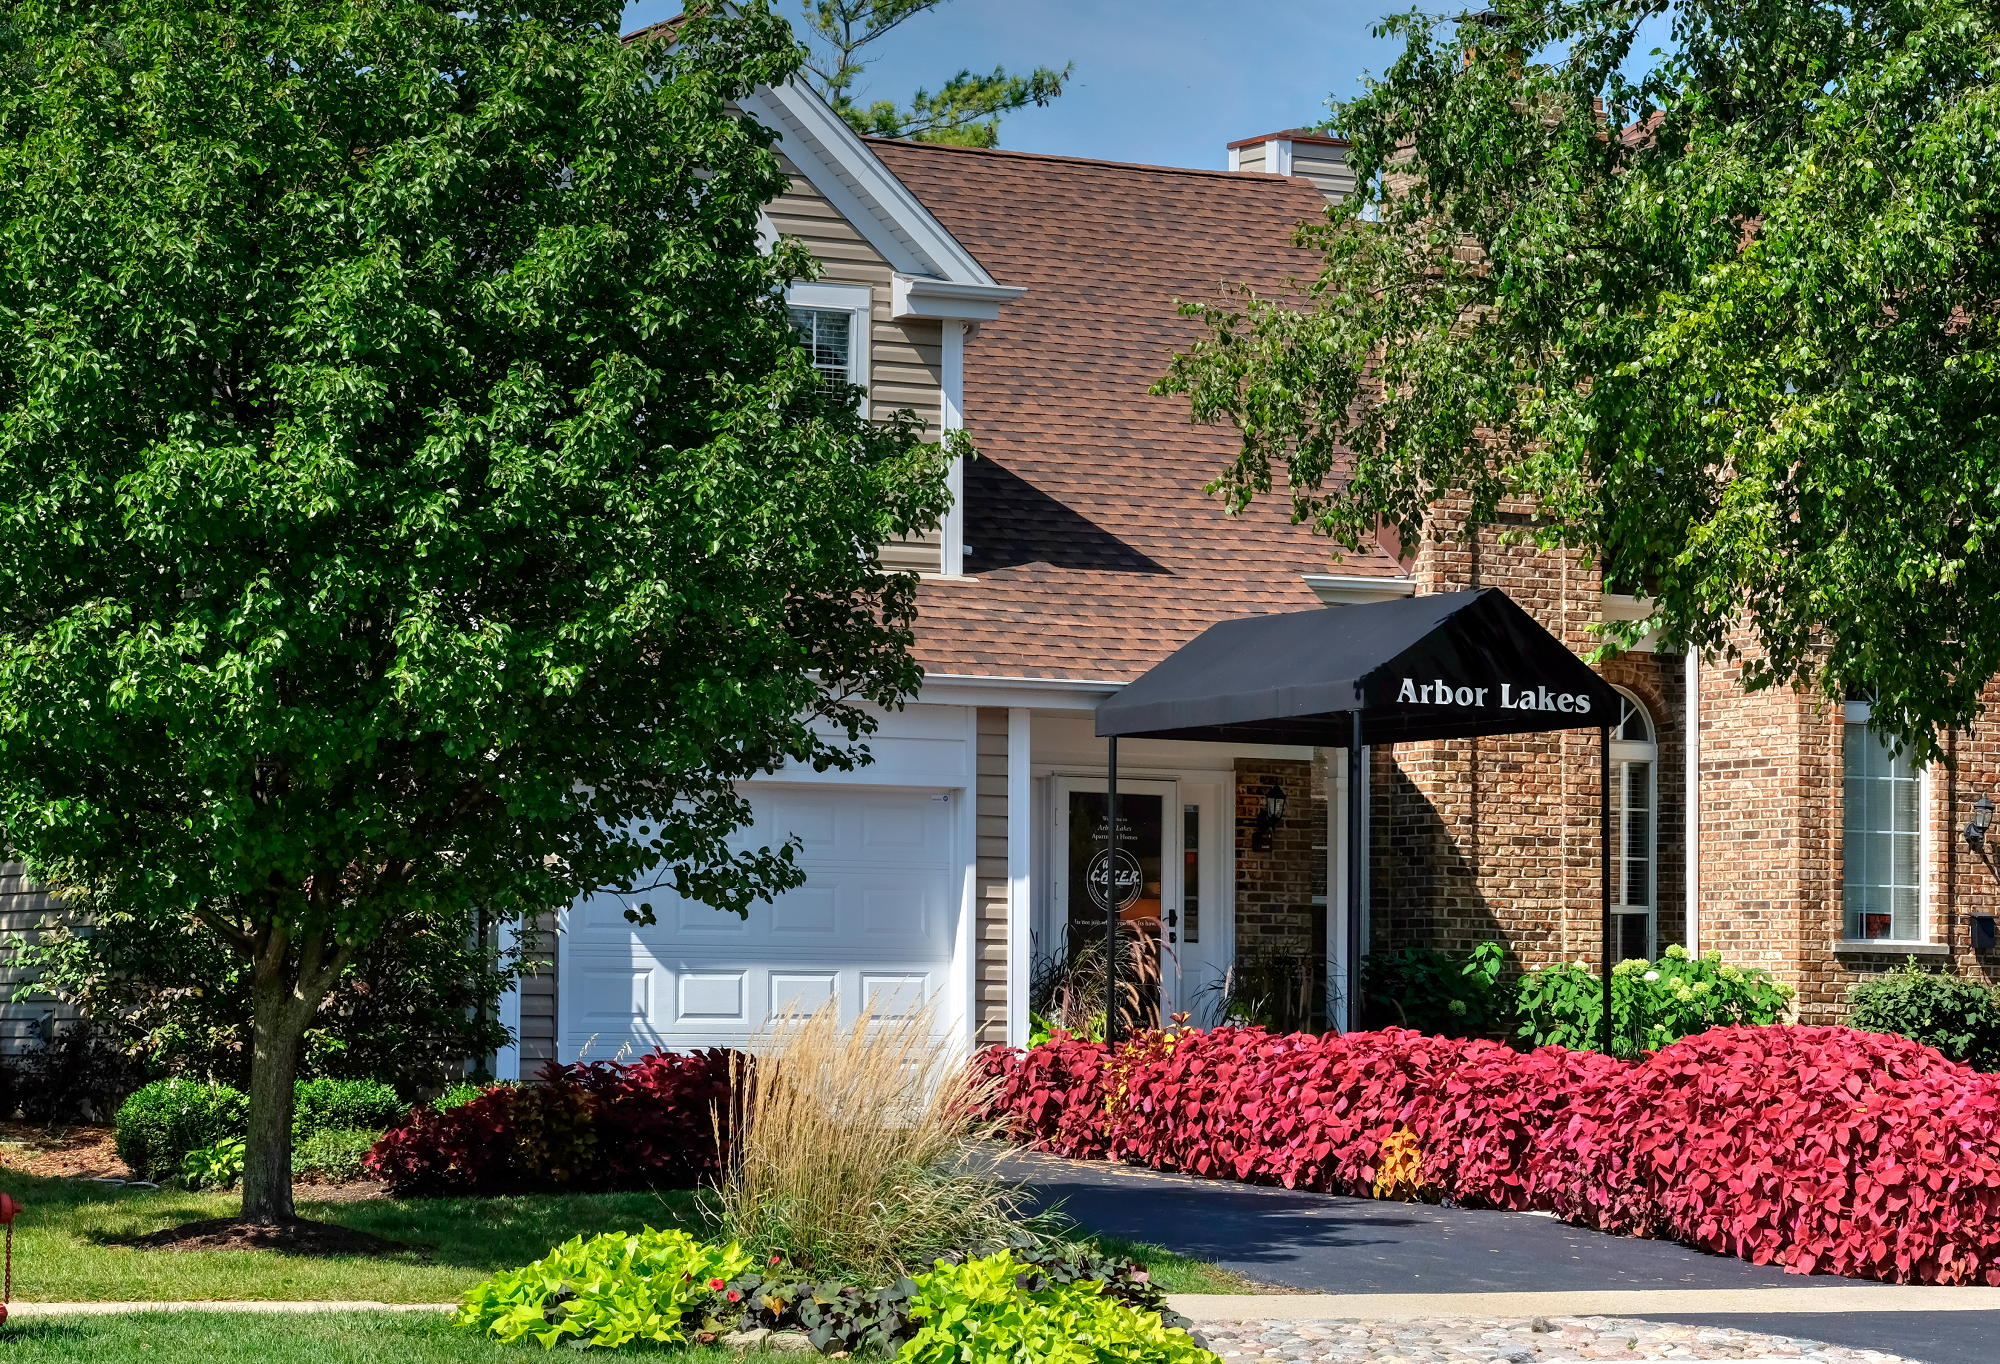 Arbor Lakes Apartments in Arlington Heights, IL | Whitepages